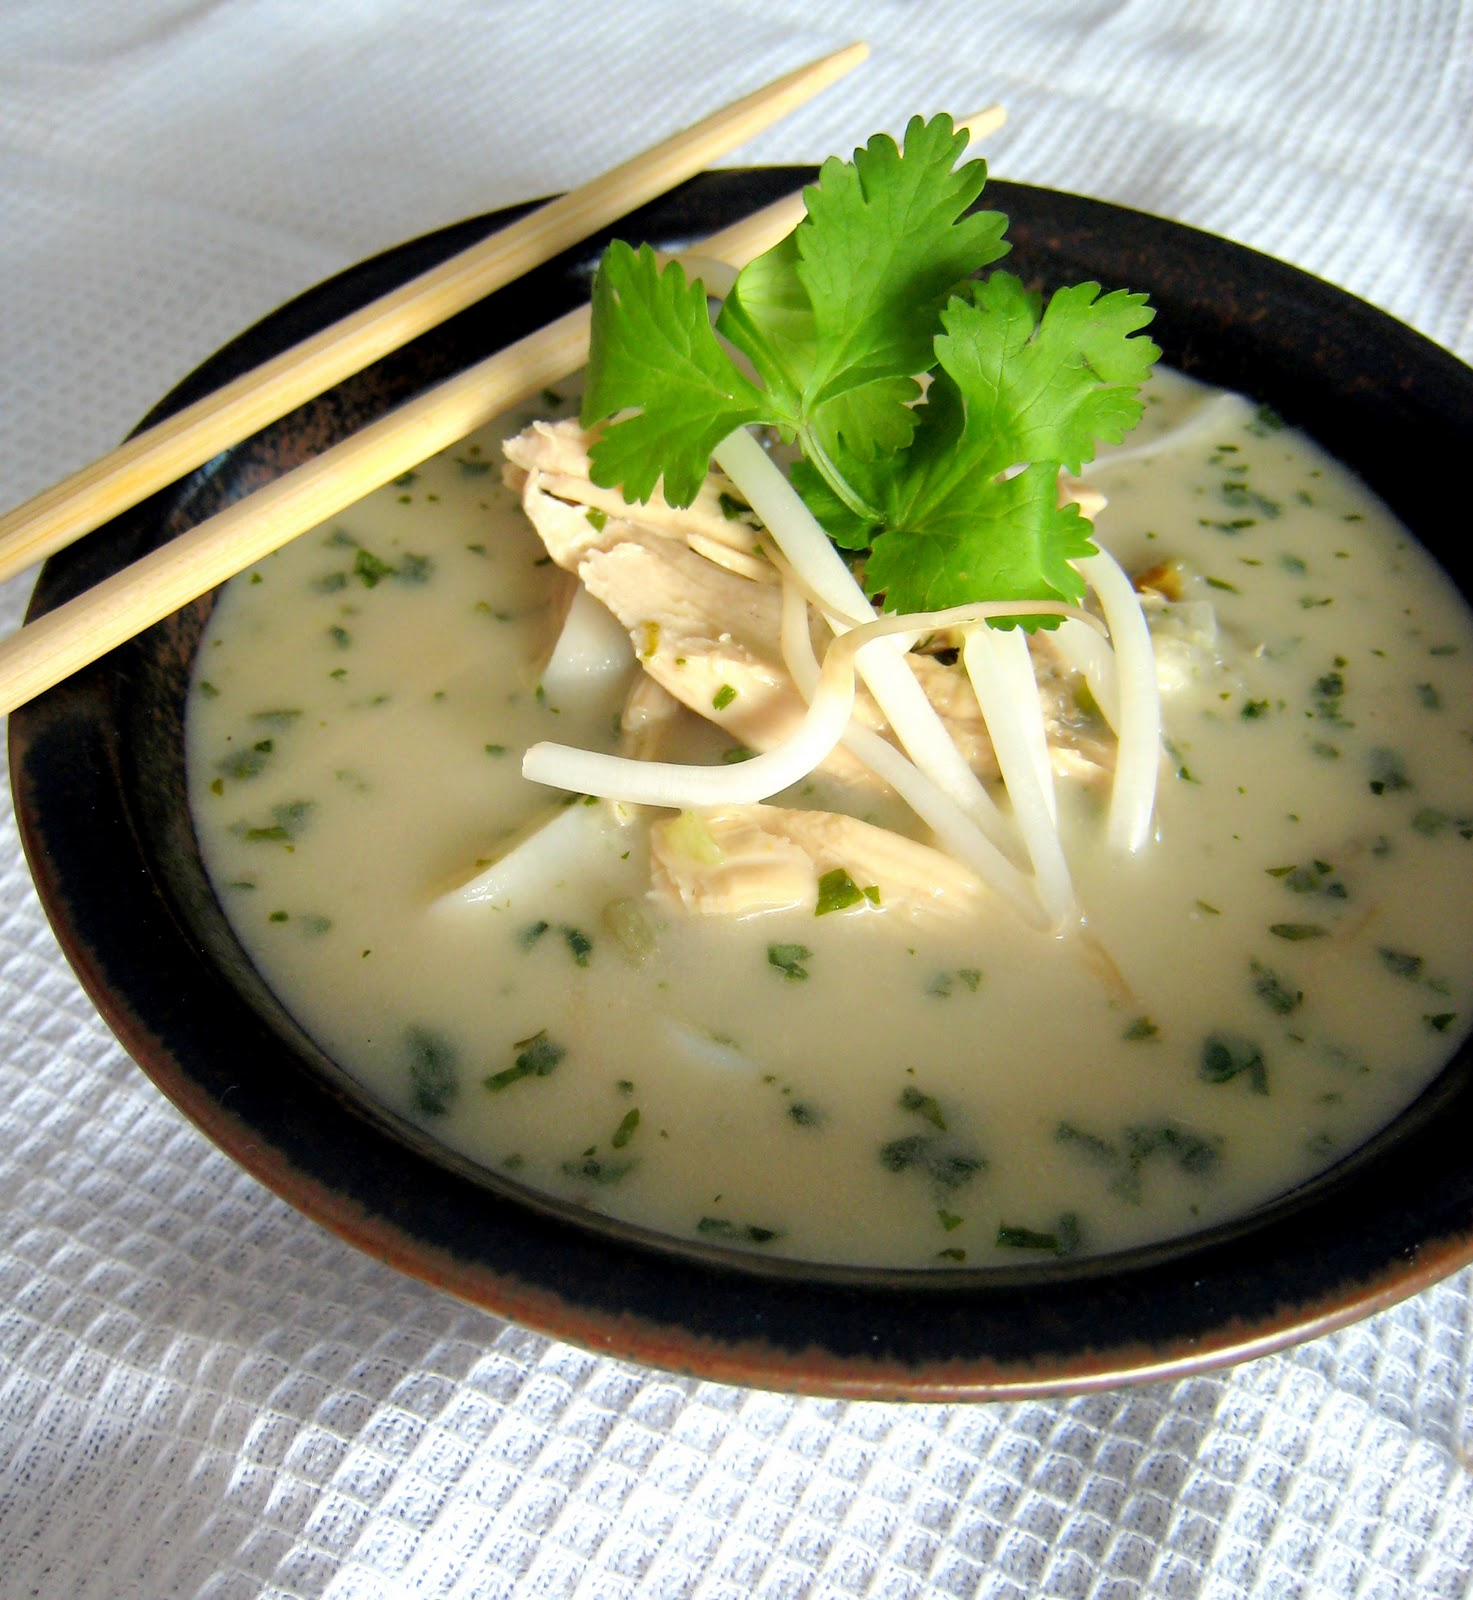 Vietnamese%2BChicken%2BNoodle%2BSoup%2BDorie (Democracy and Education, 1916; MW 9:8 9)